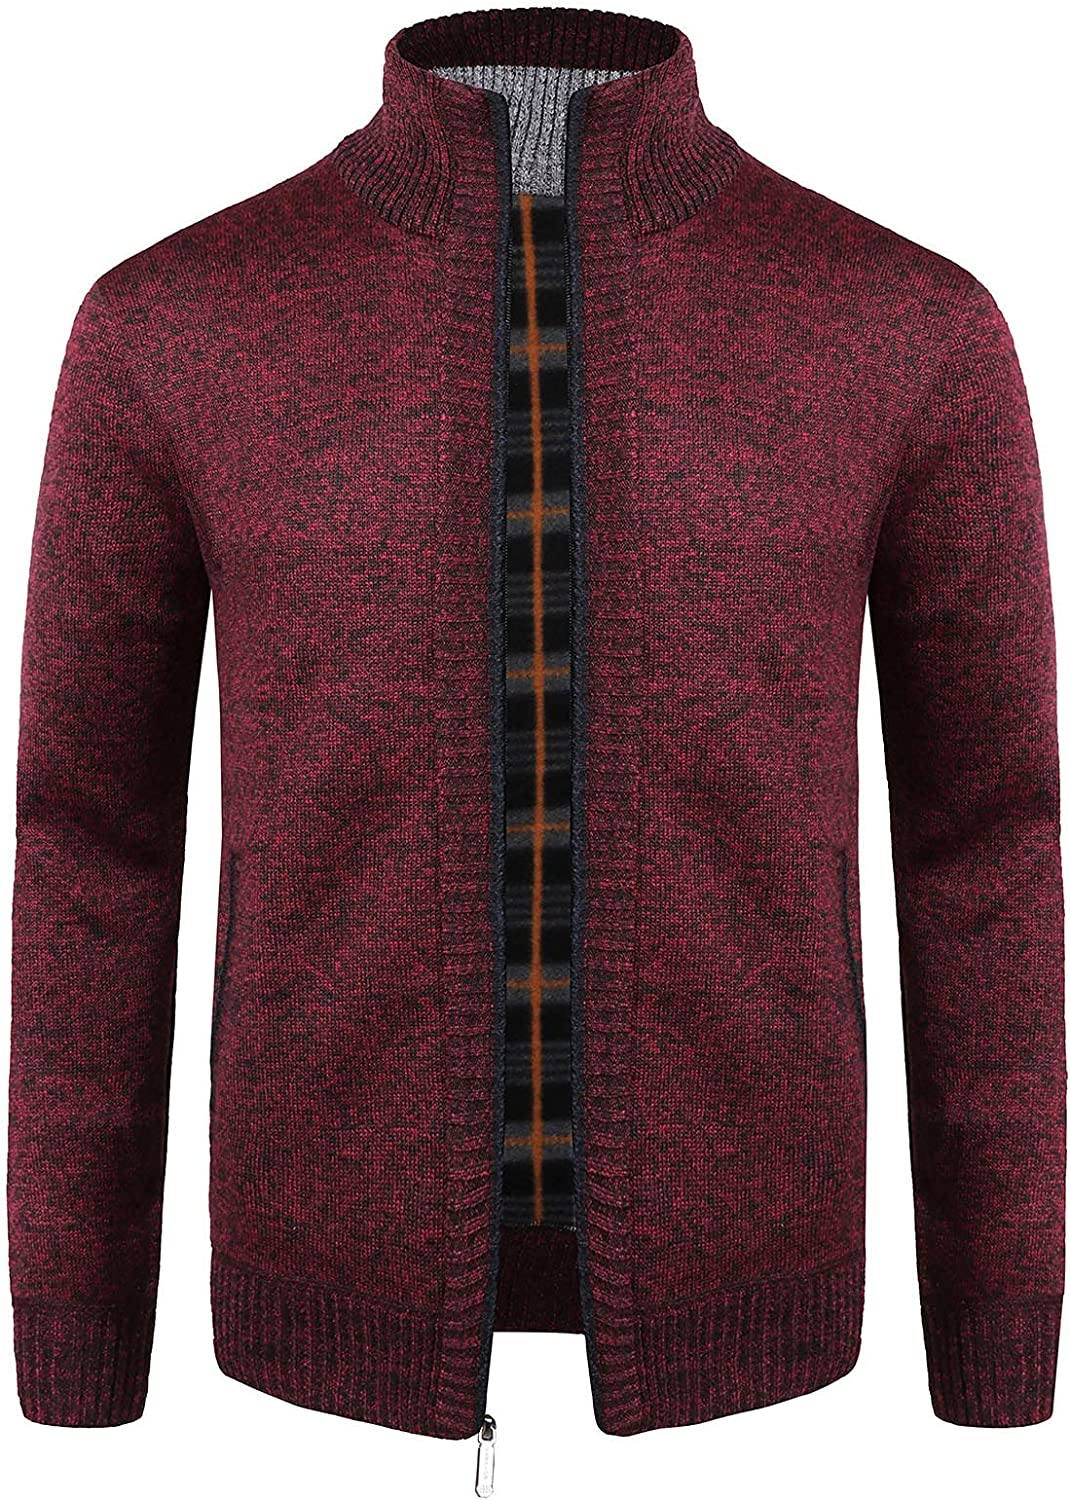 Men Solid Color Stand-up Collar Fleece Sweater Knitwear Shirt Autumn Winter Thicken Warmth Casual Tops Jacket Coats